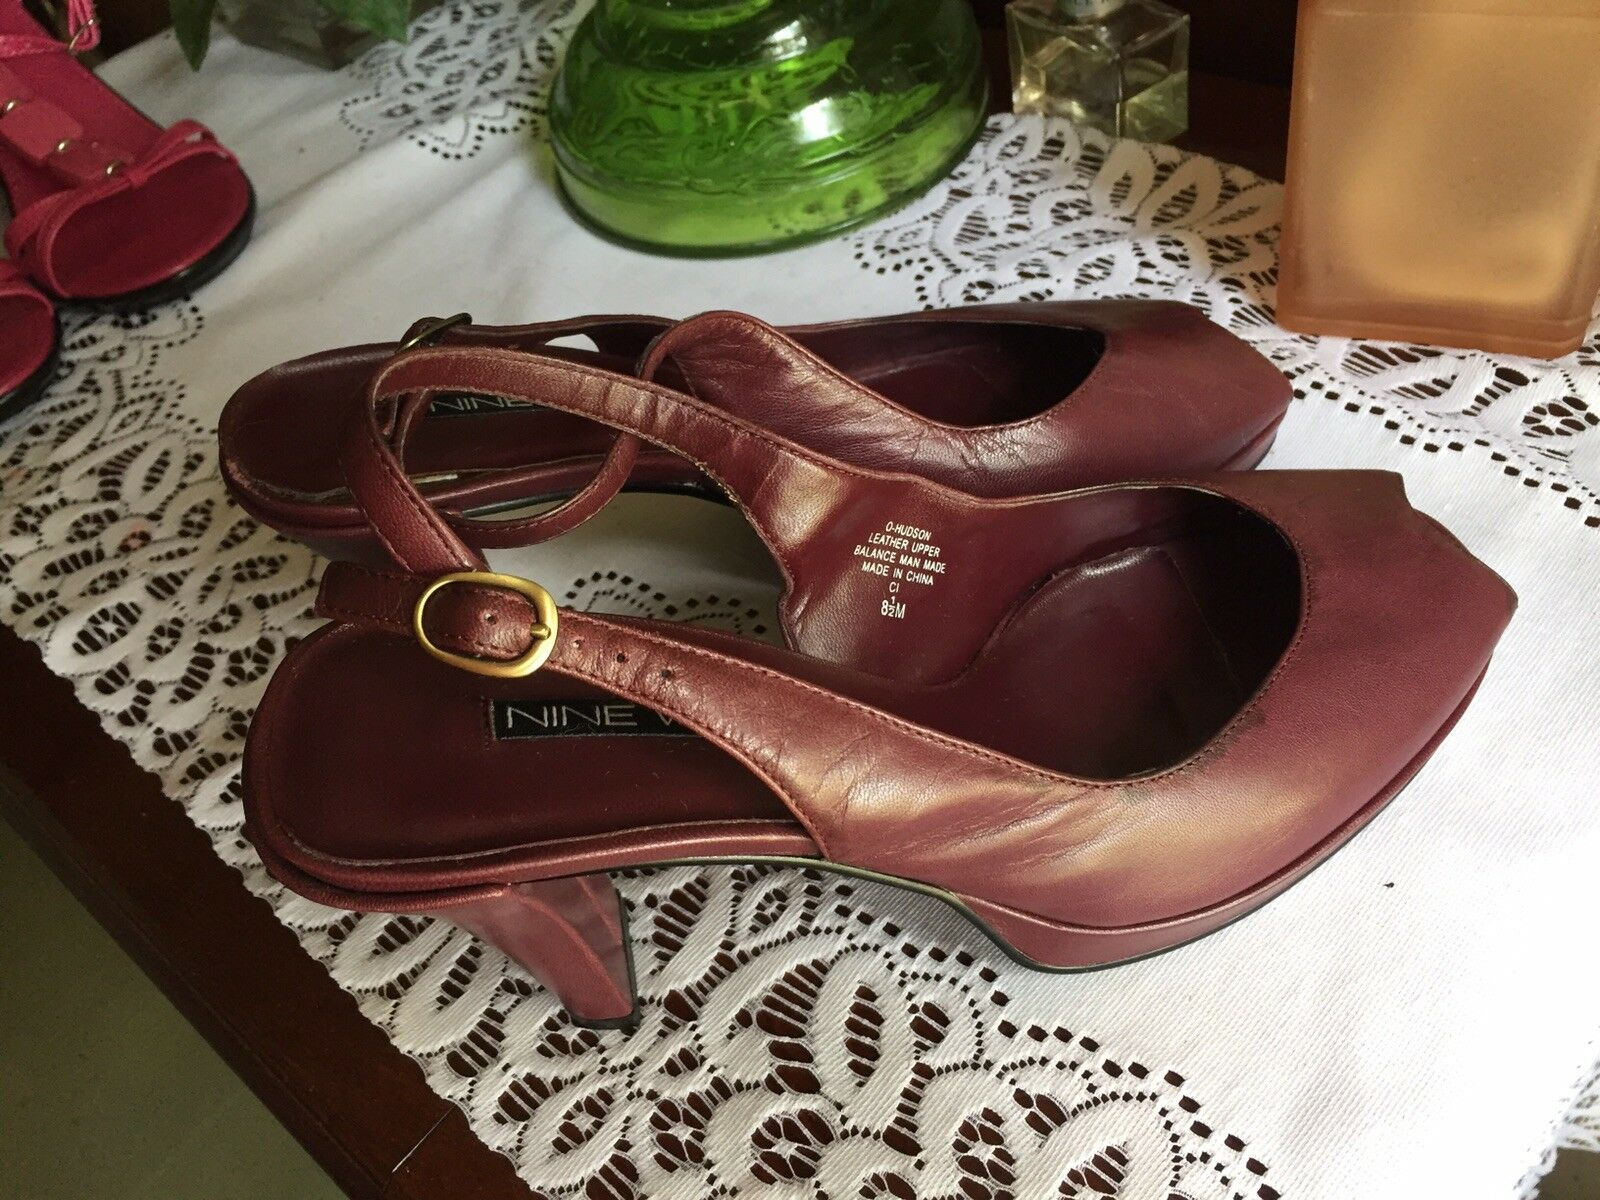 NINE WEST HEELS Peep Toe Toe Peep SIze 8.5 SLINGBACKS Platforms Burgundy 5cb647